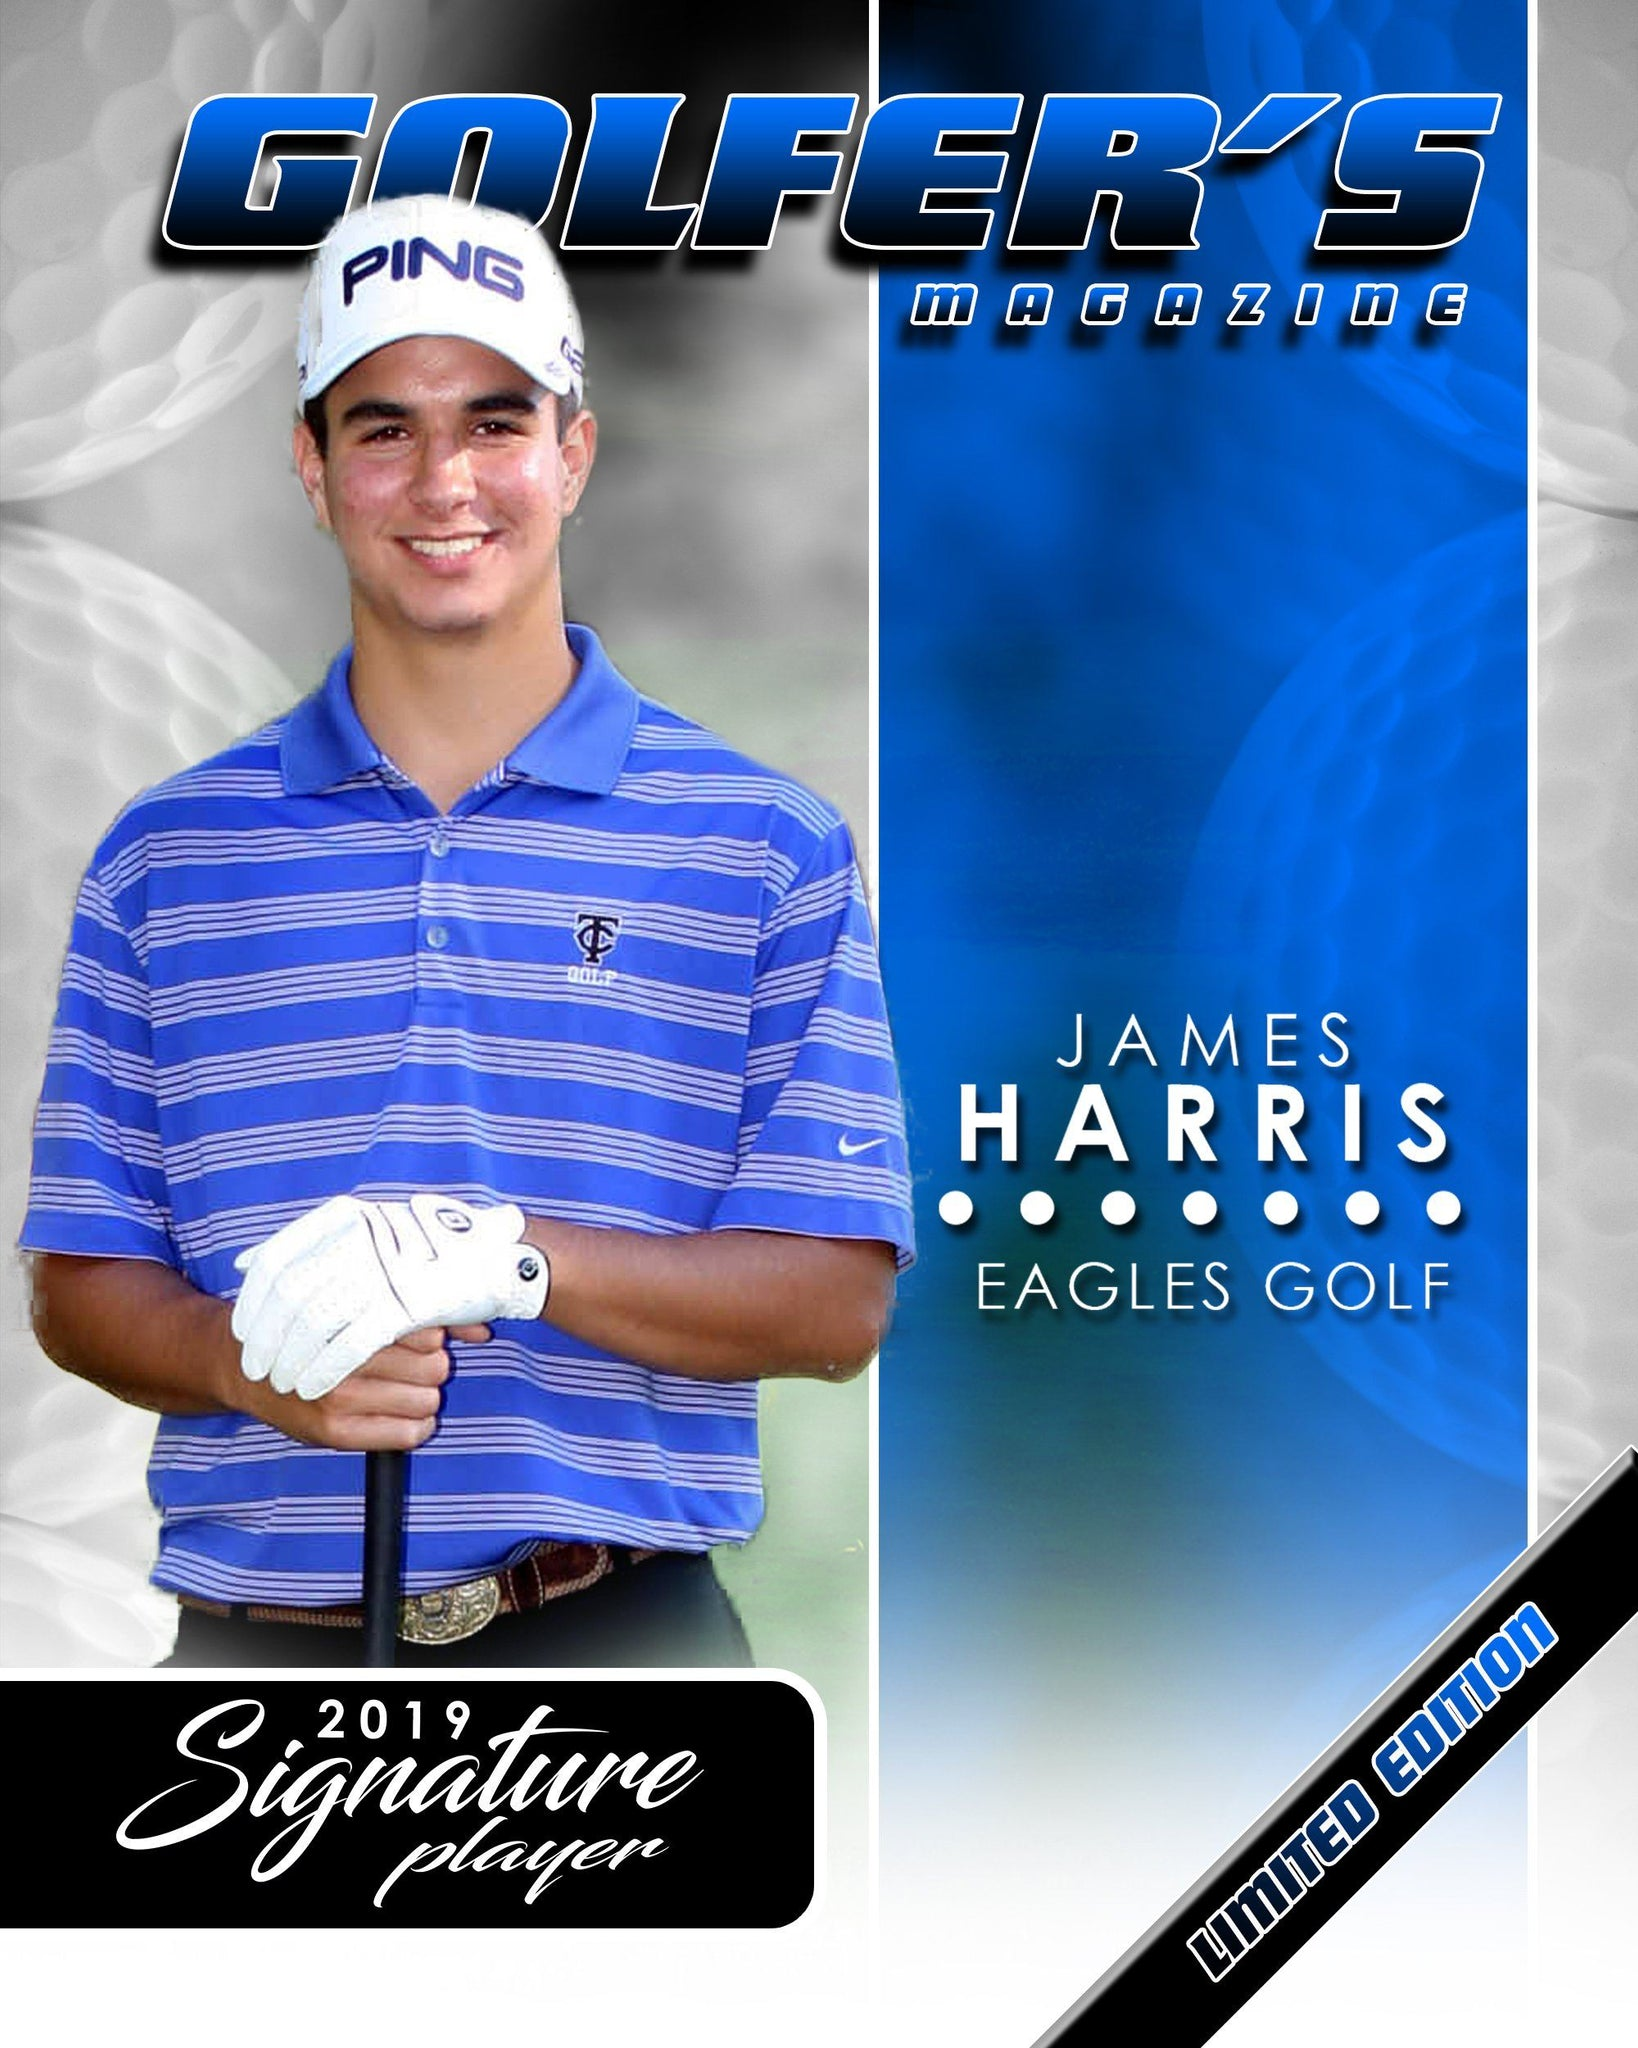 Signature Player - Golf - V1 - Extraction Magazine Cover Template-Photoshop Template - Photo Solutions